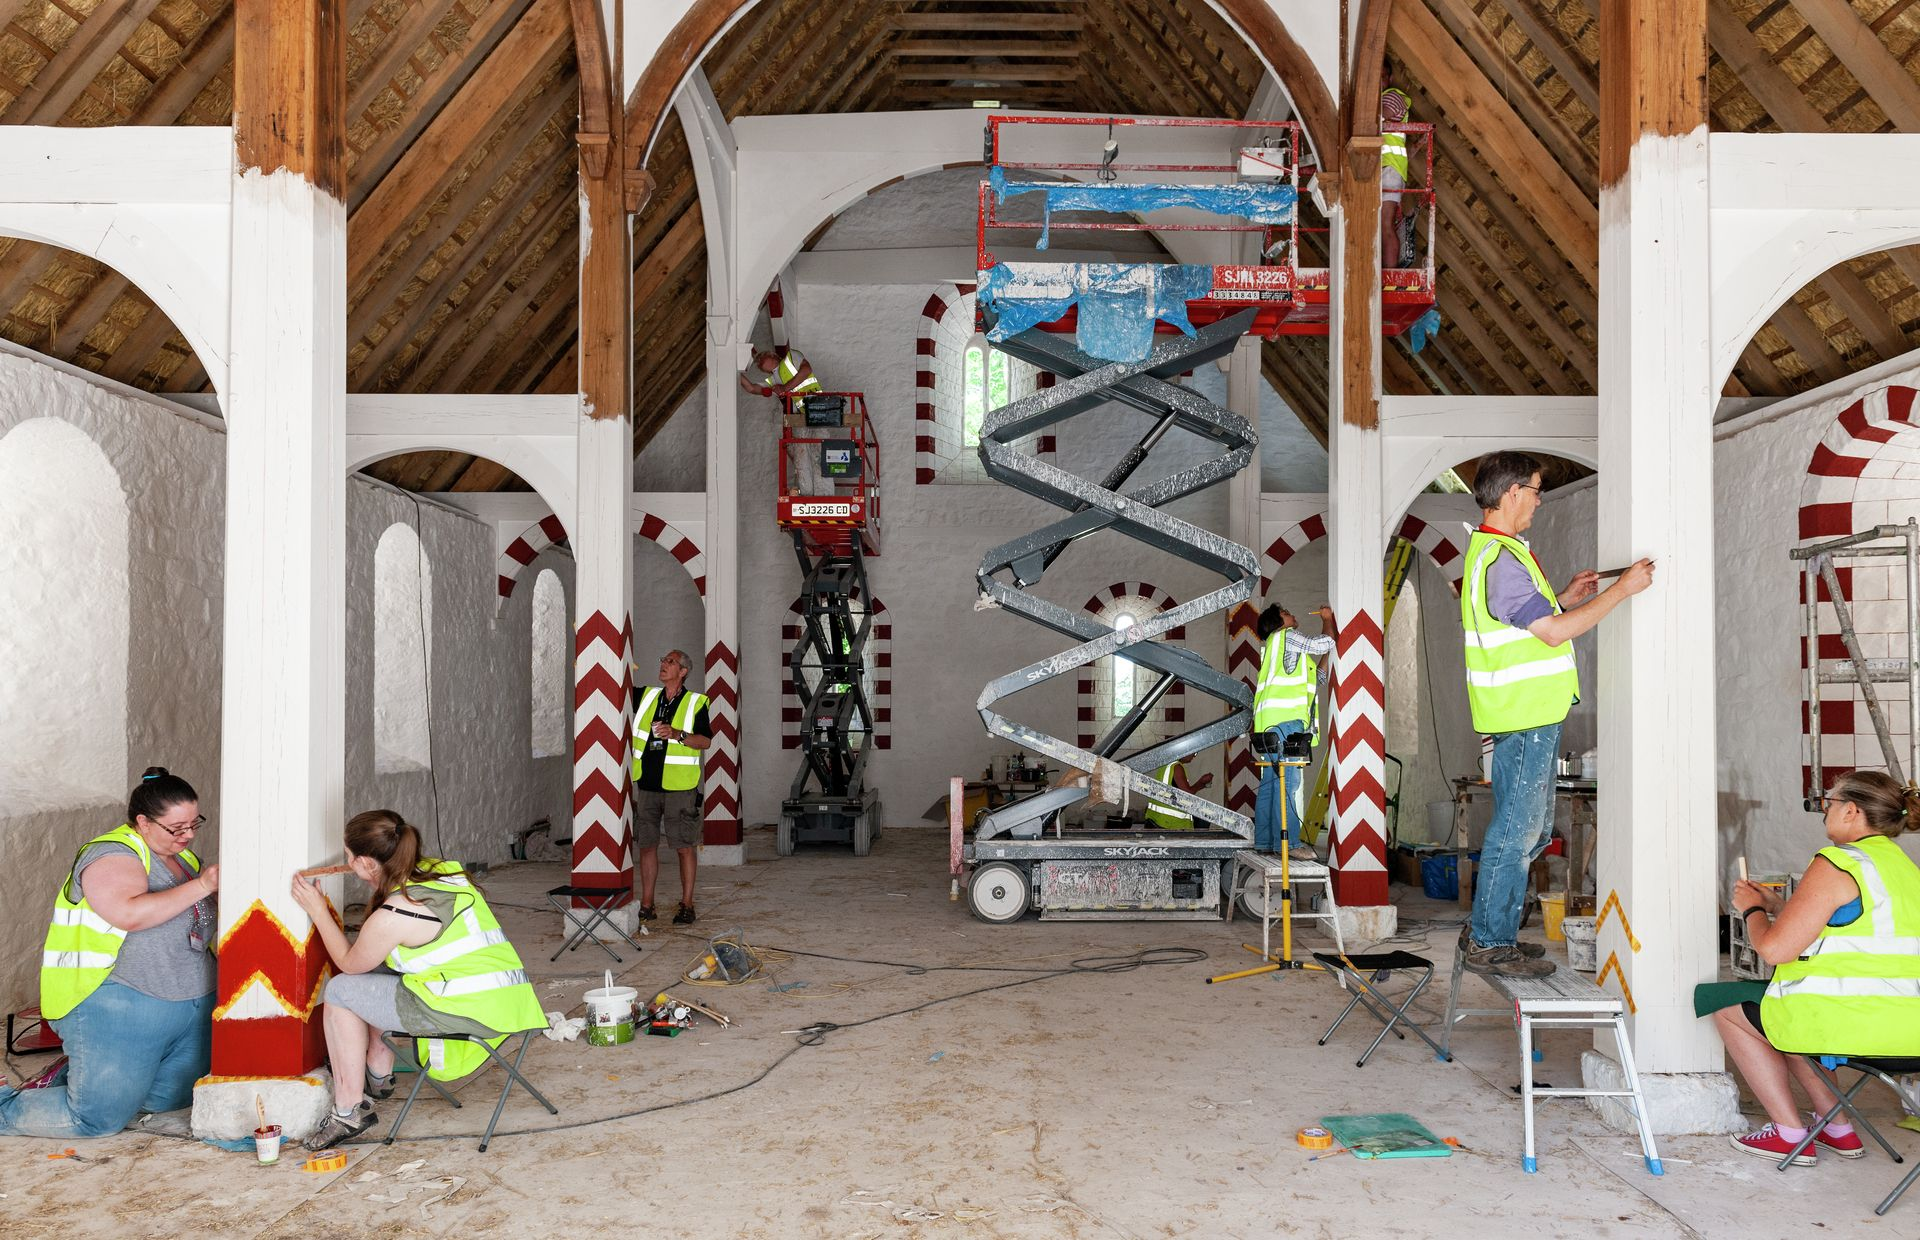 View of the hall showing several people at work painting the interior of the Llys.